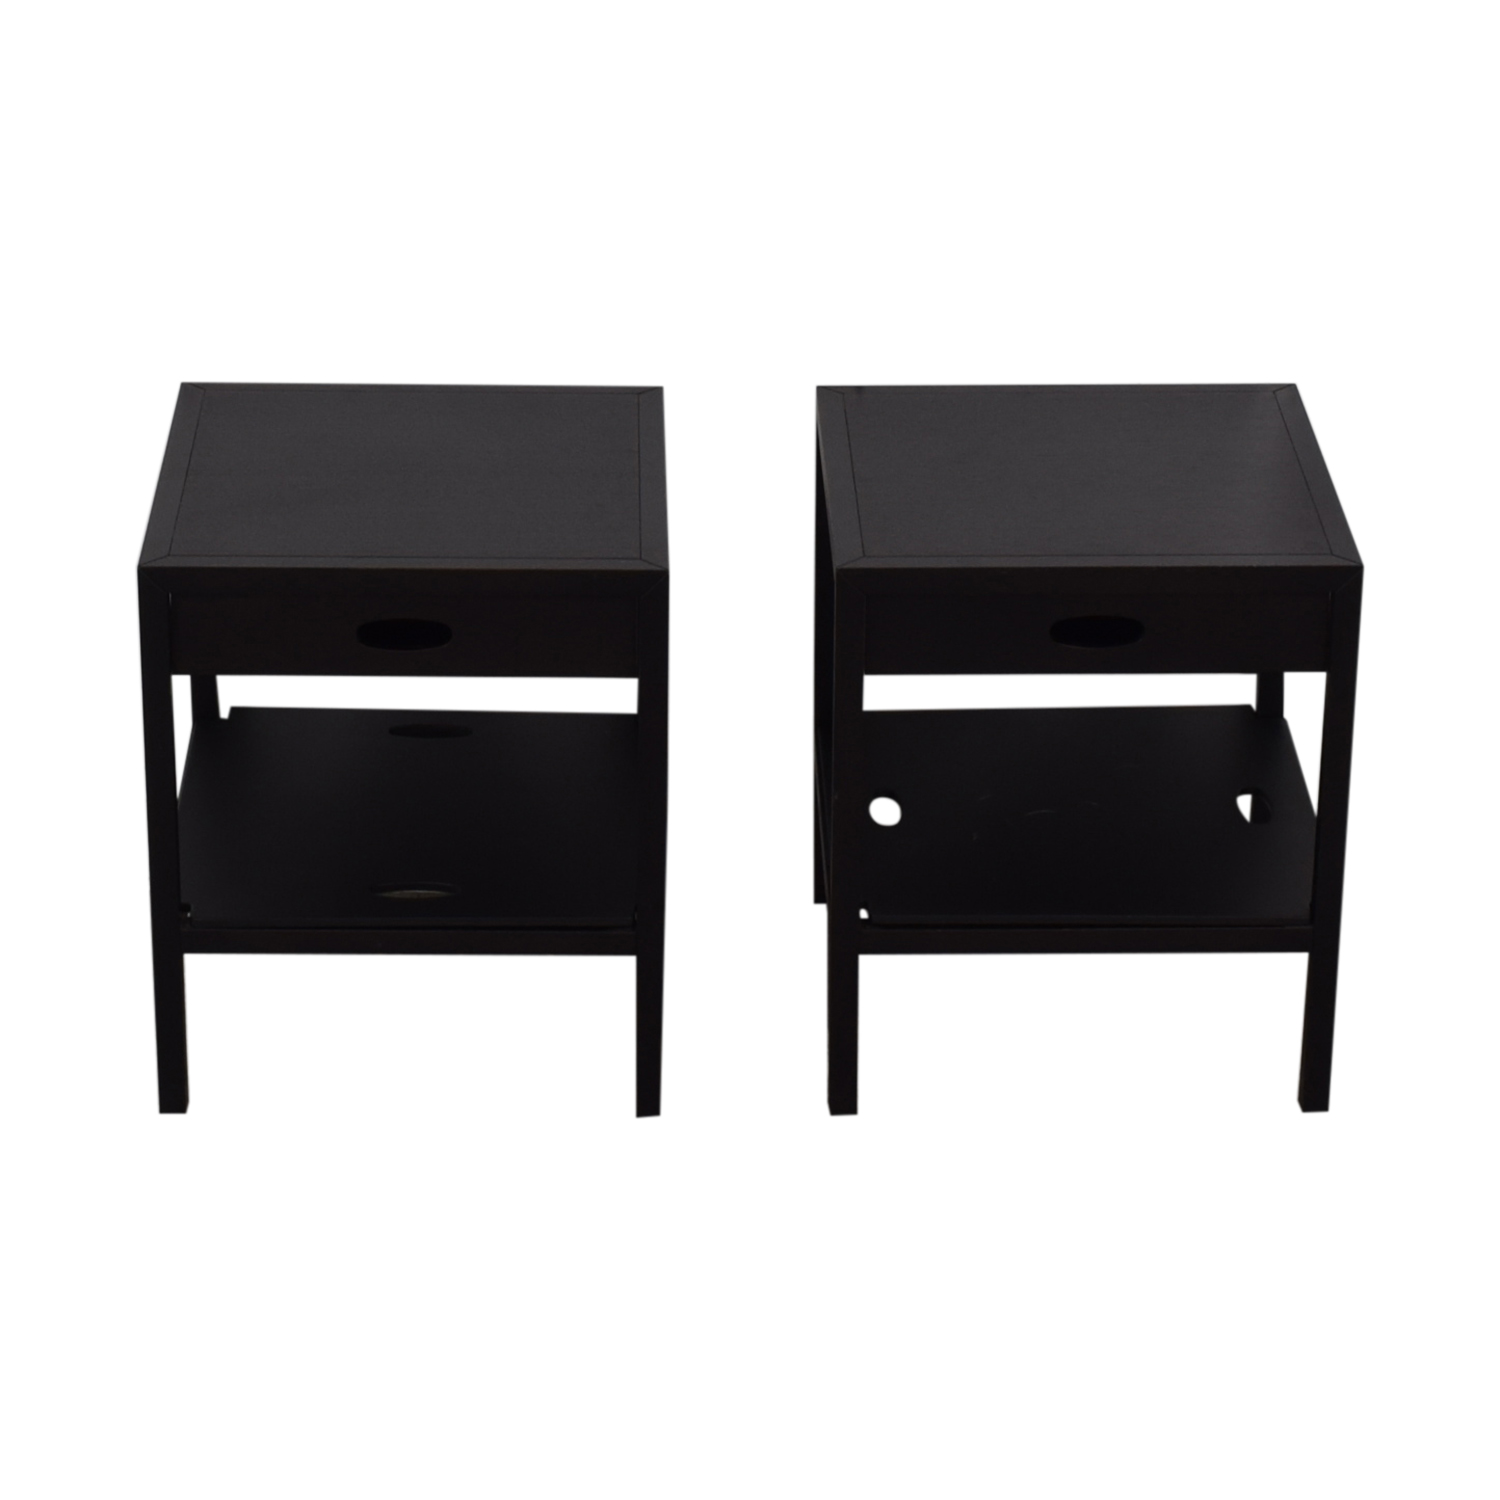 shop Spigoline Black Single Drawer Wenge End Tables Spigoline